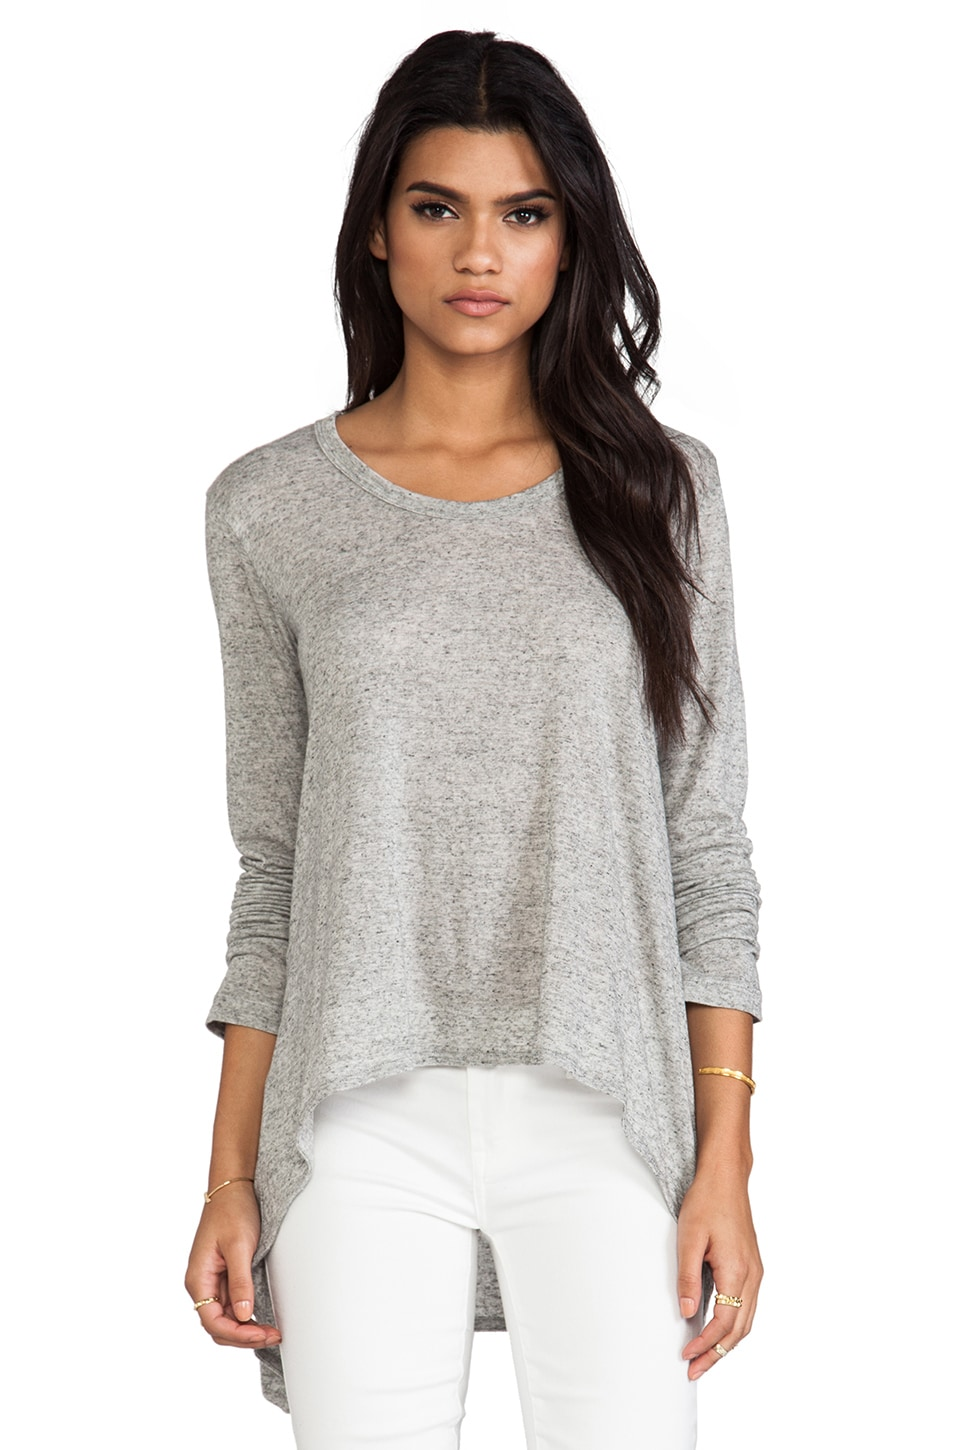 Wilt Shrunken Long Sleeve Boyfriend Tee in Grey Heather